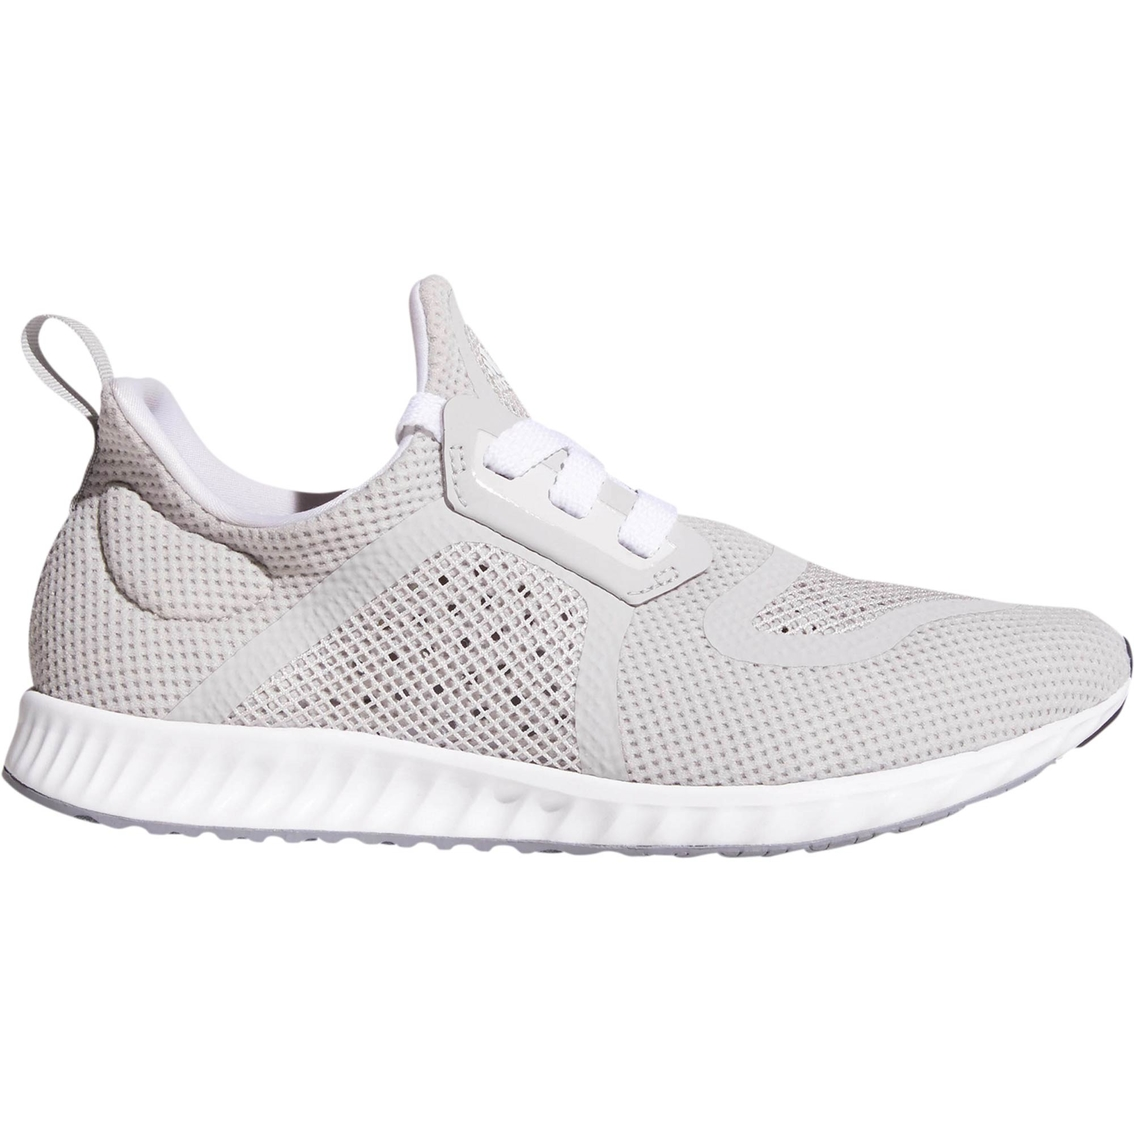 efcf46f68 Adidas Women s Edge Lux Clima Running Shoes